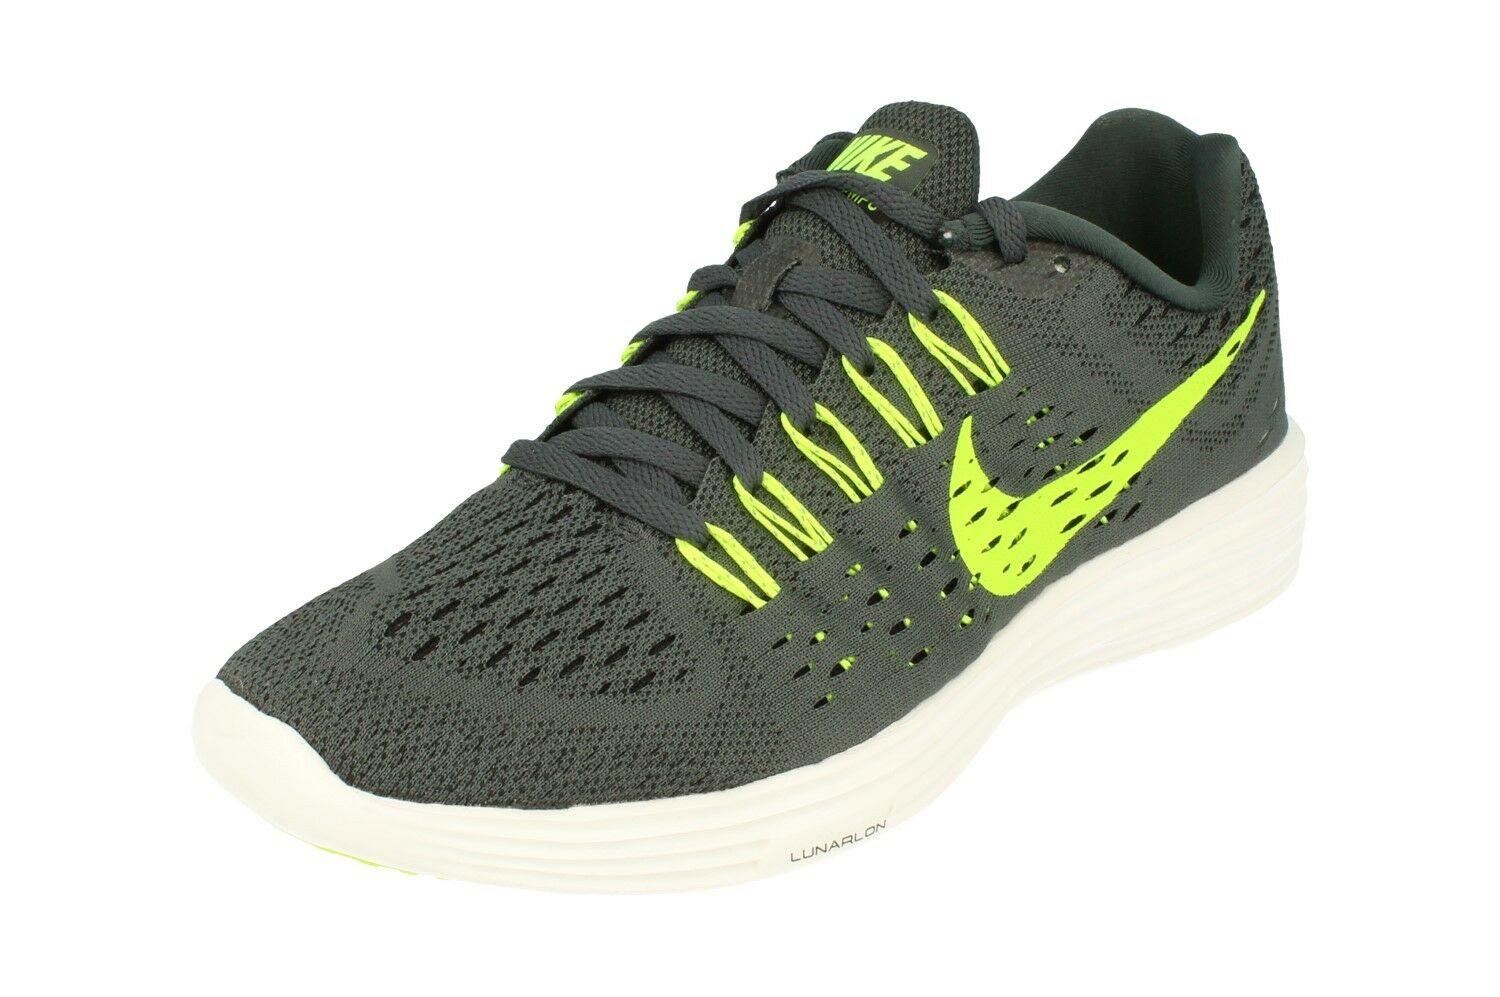 nike lunartempo mens running trainers sneakers shoes